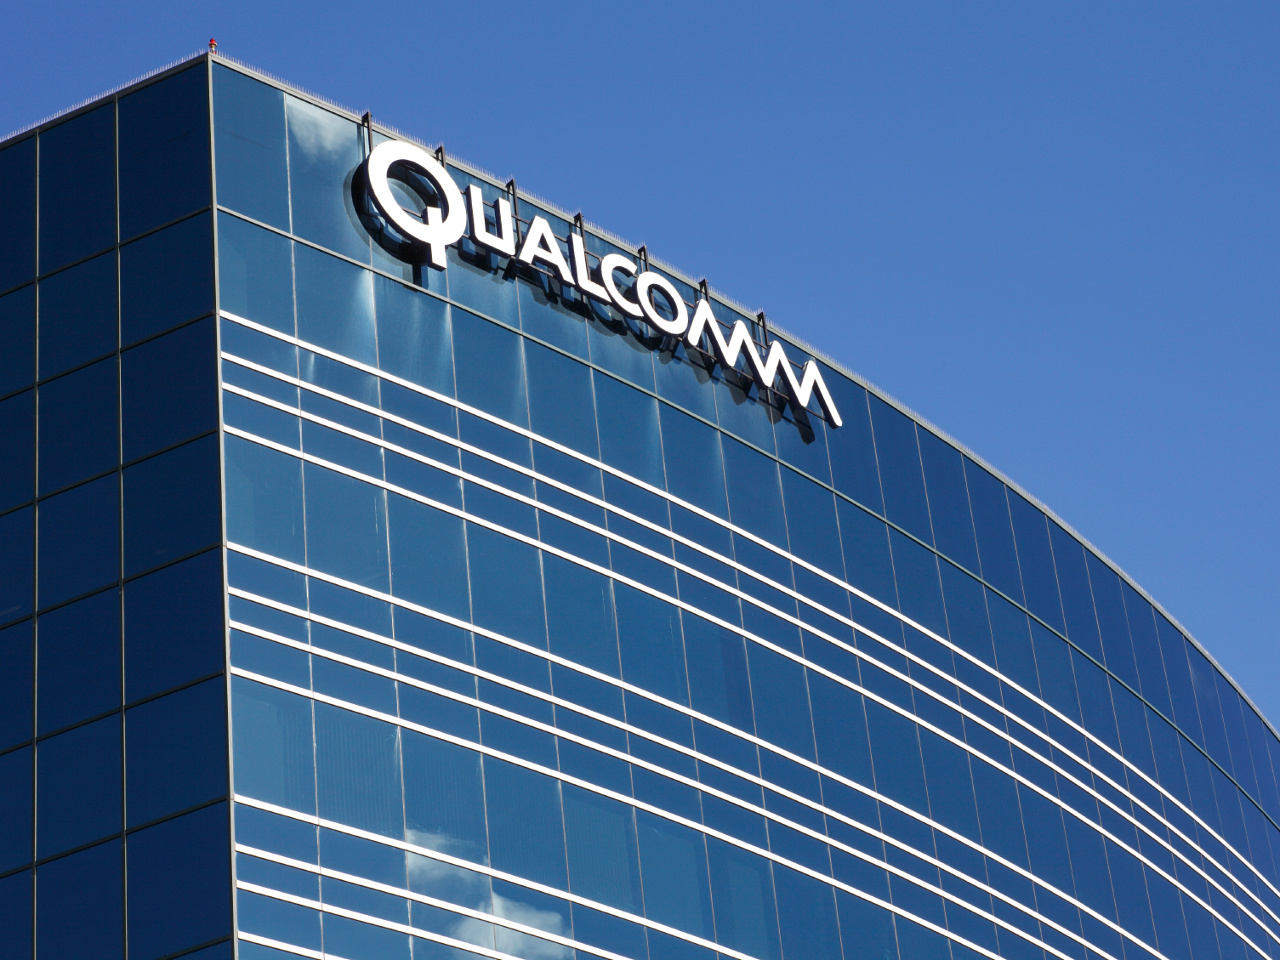 Qualcomm rejects Broadcom's revised offer early February 2018